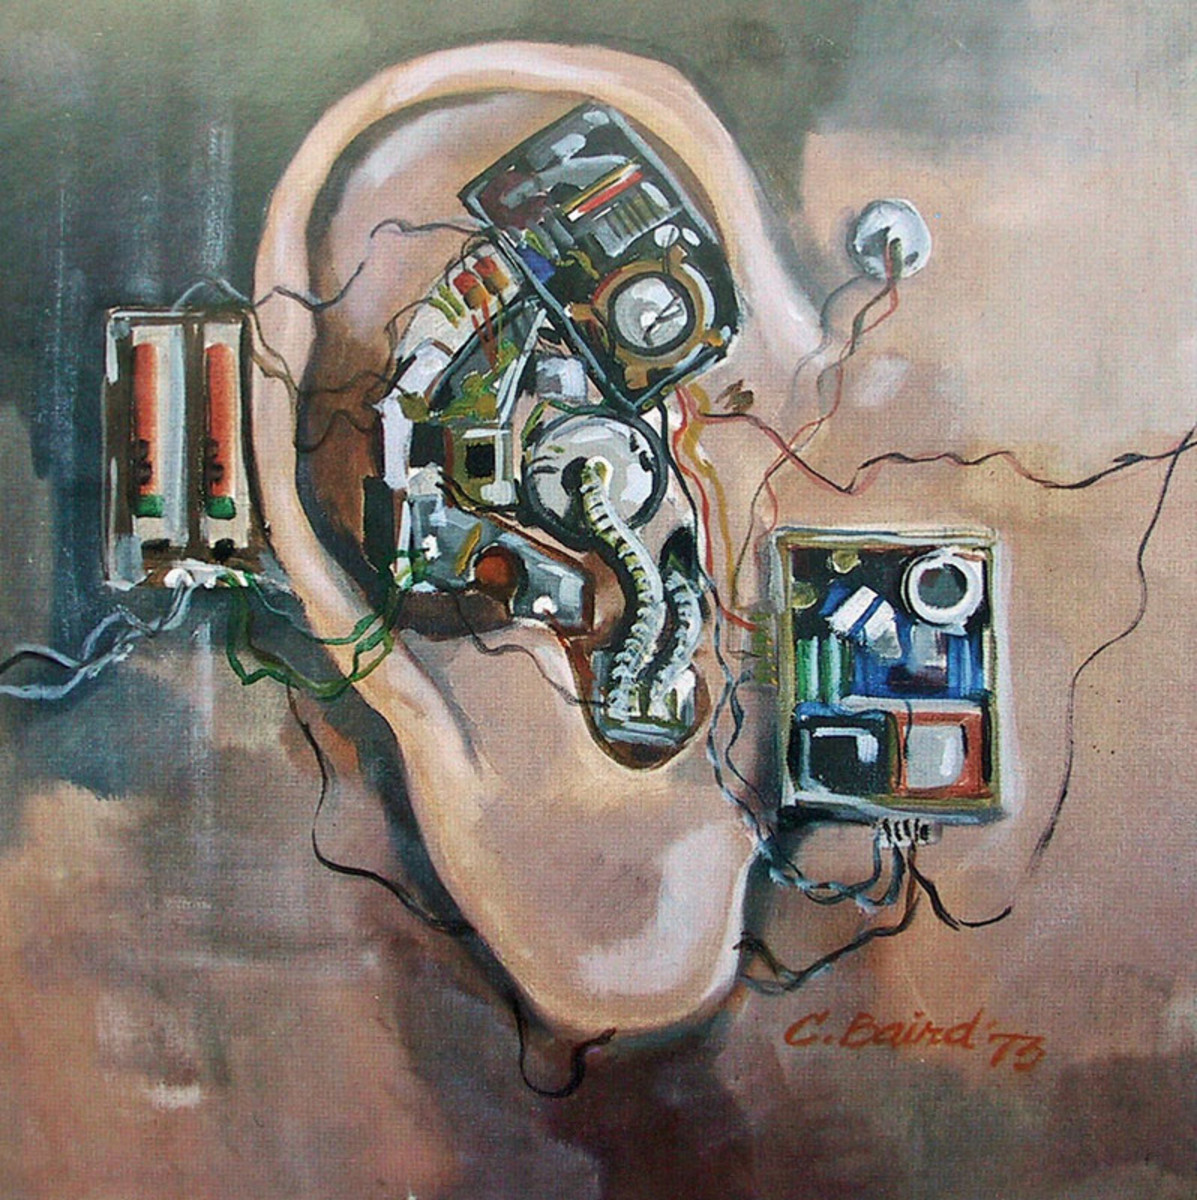 Mechanical Ear by Chuck Baird This shows the Deaf Culture's aversion to hearing aids and cochlear implants